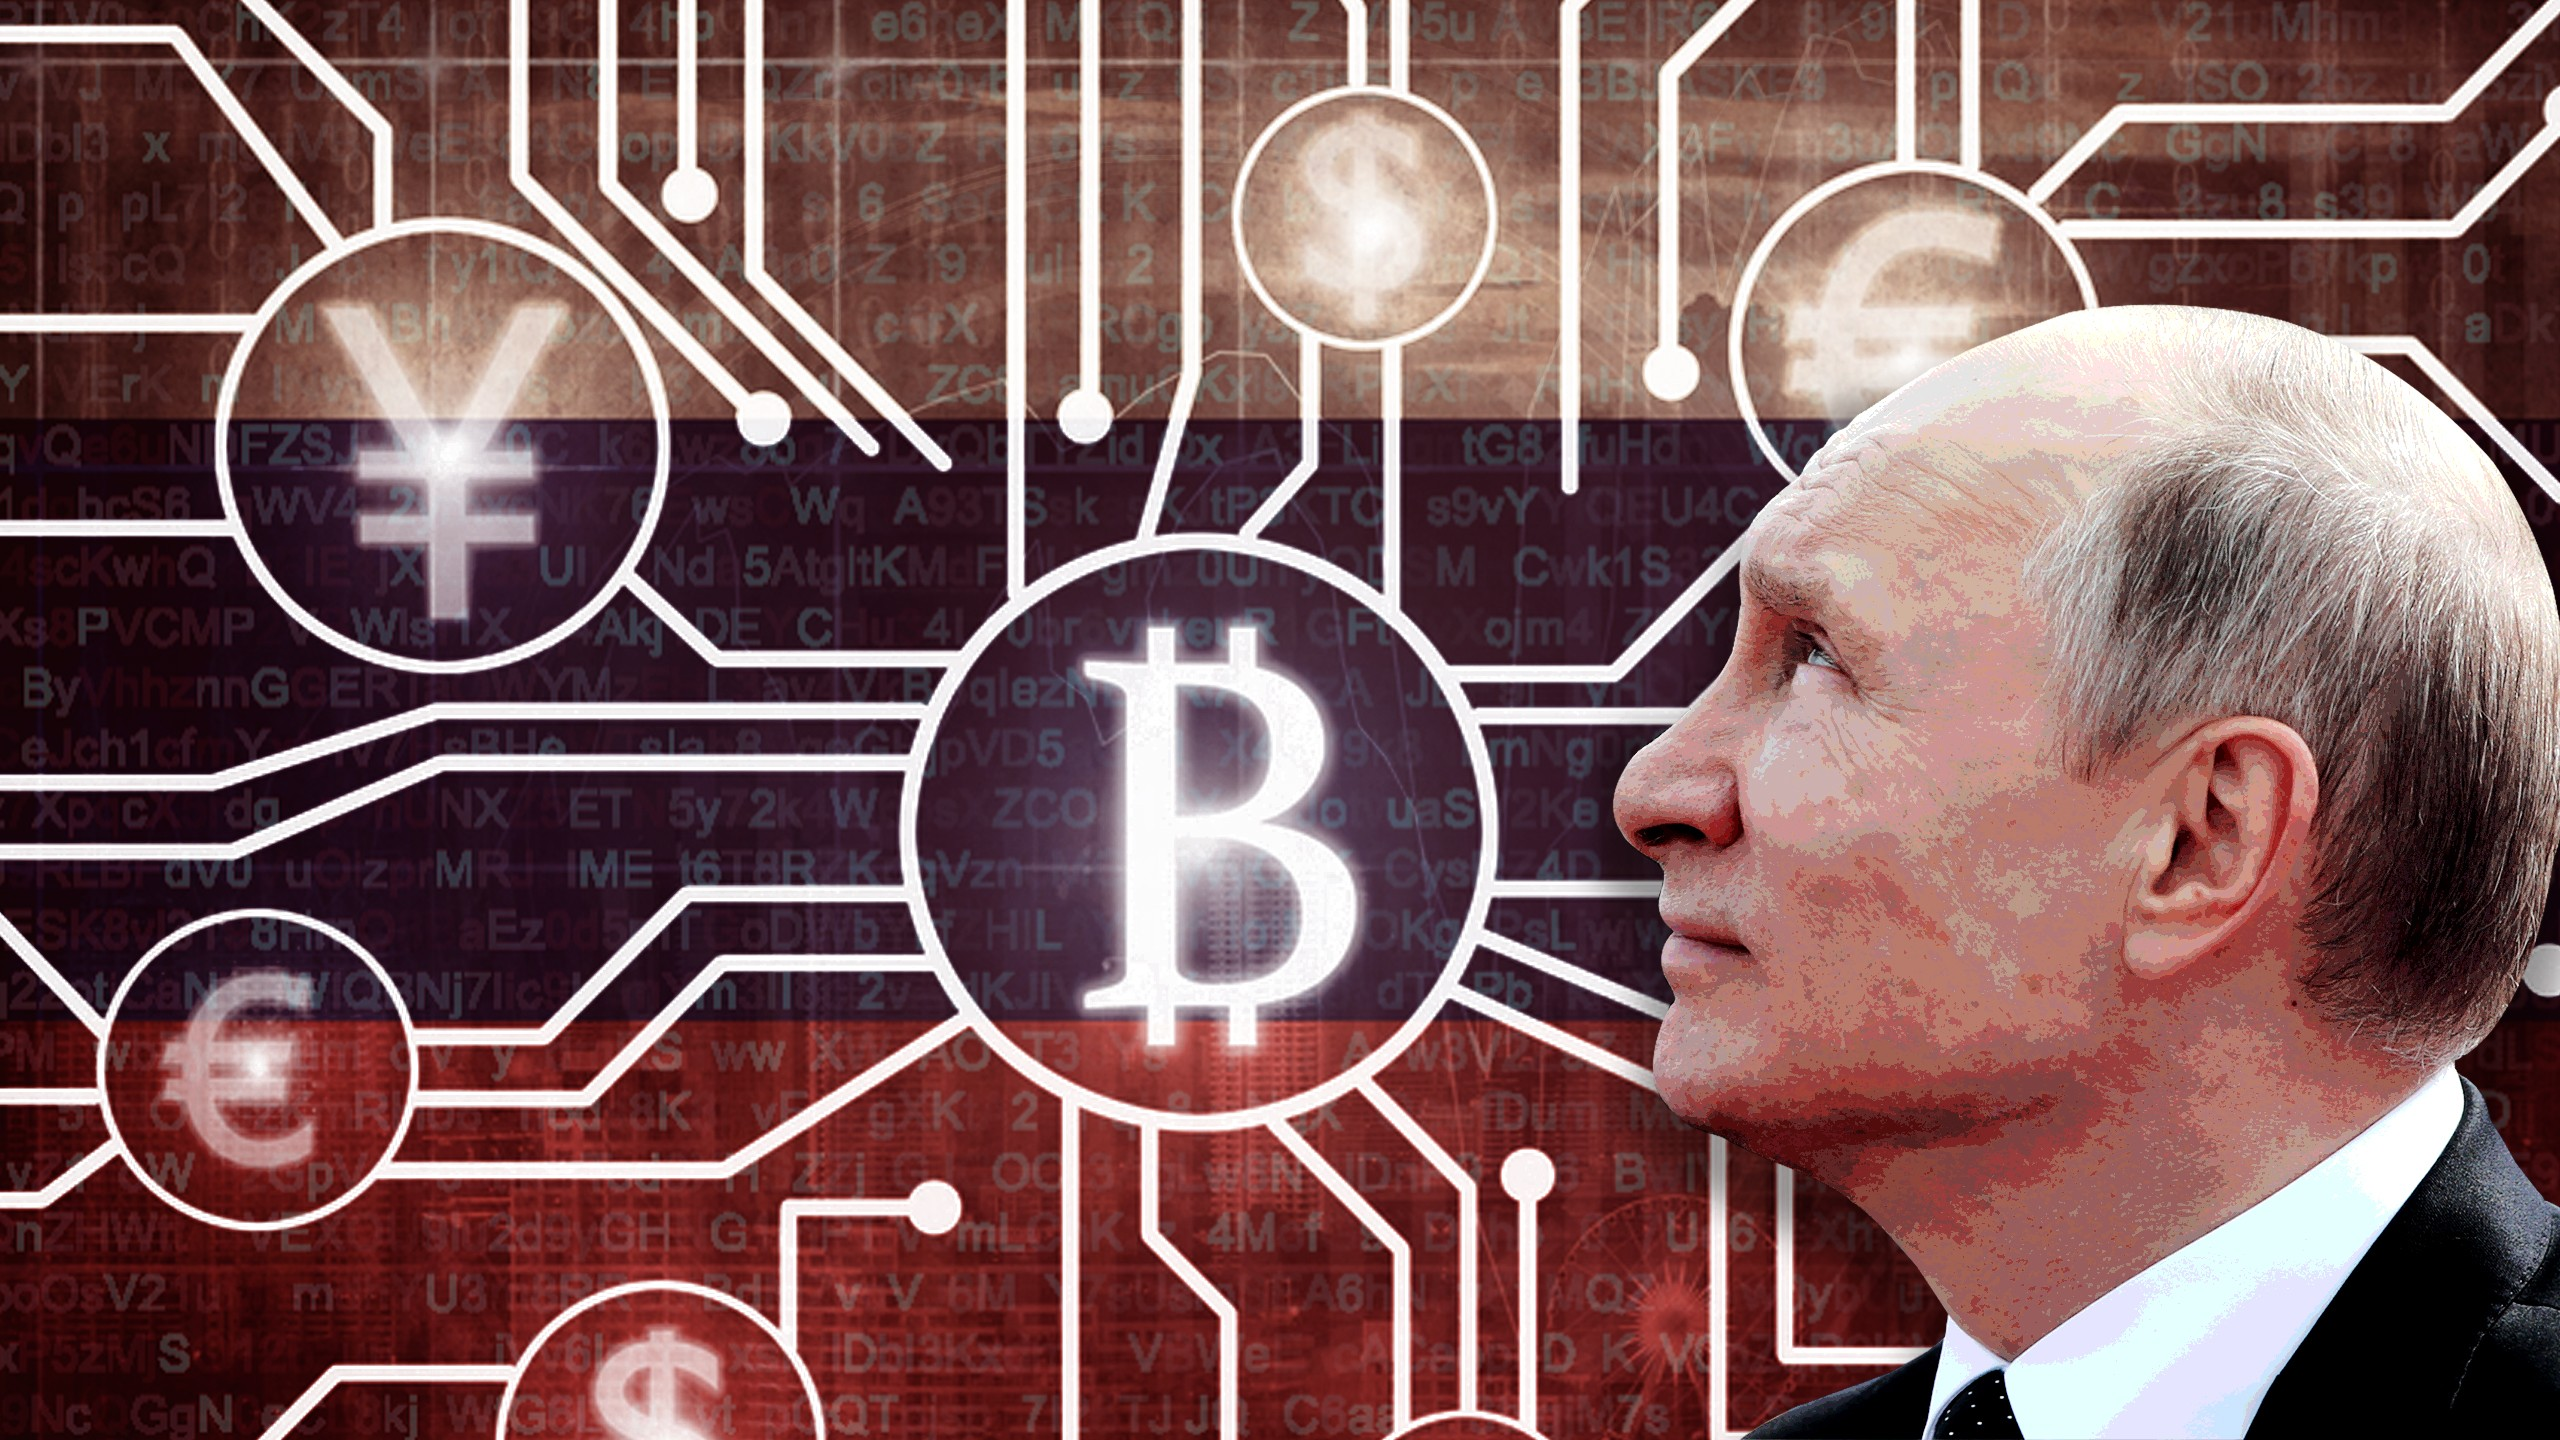 Why is the kremlin suddenly obsessed with cryptocurrencies